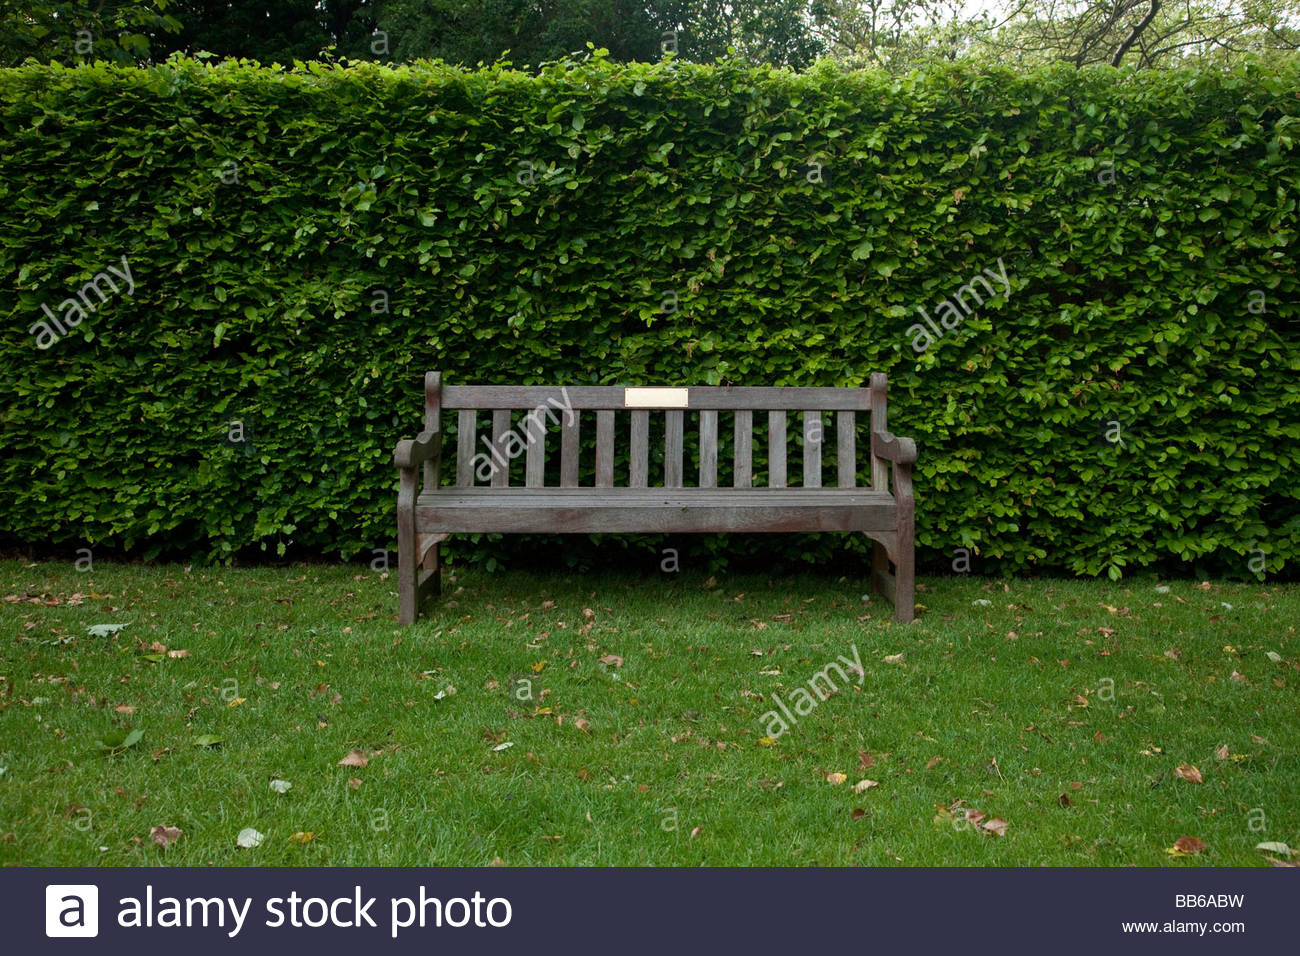 a park bench in england - Stock Image